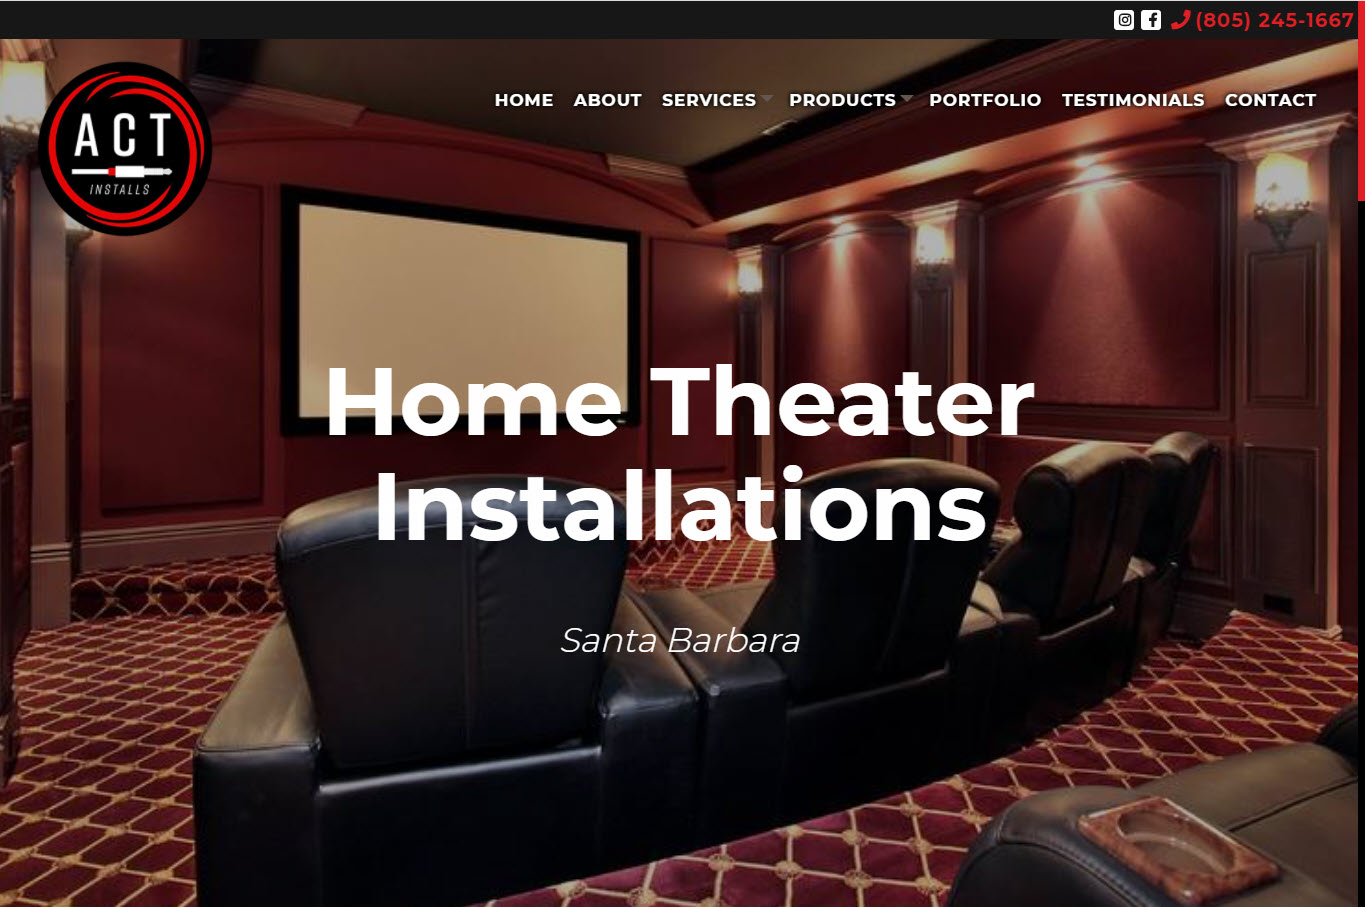 ACT Installs Homepage